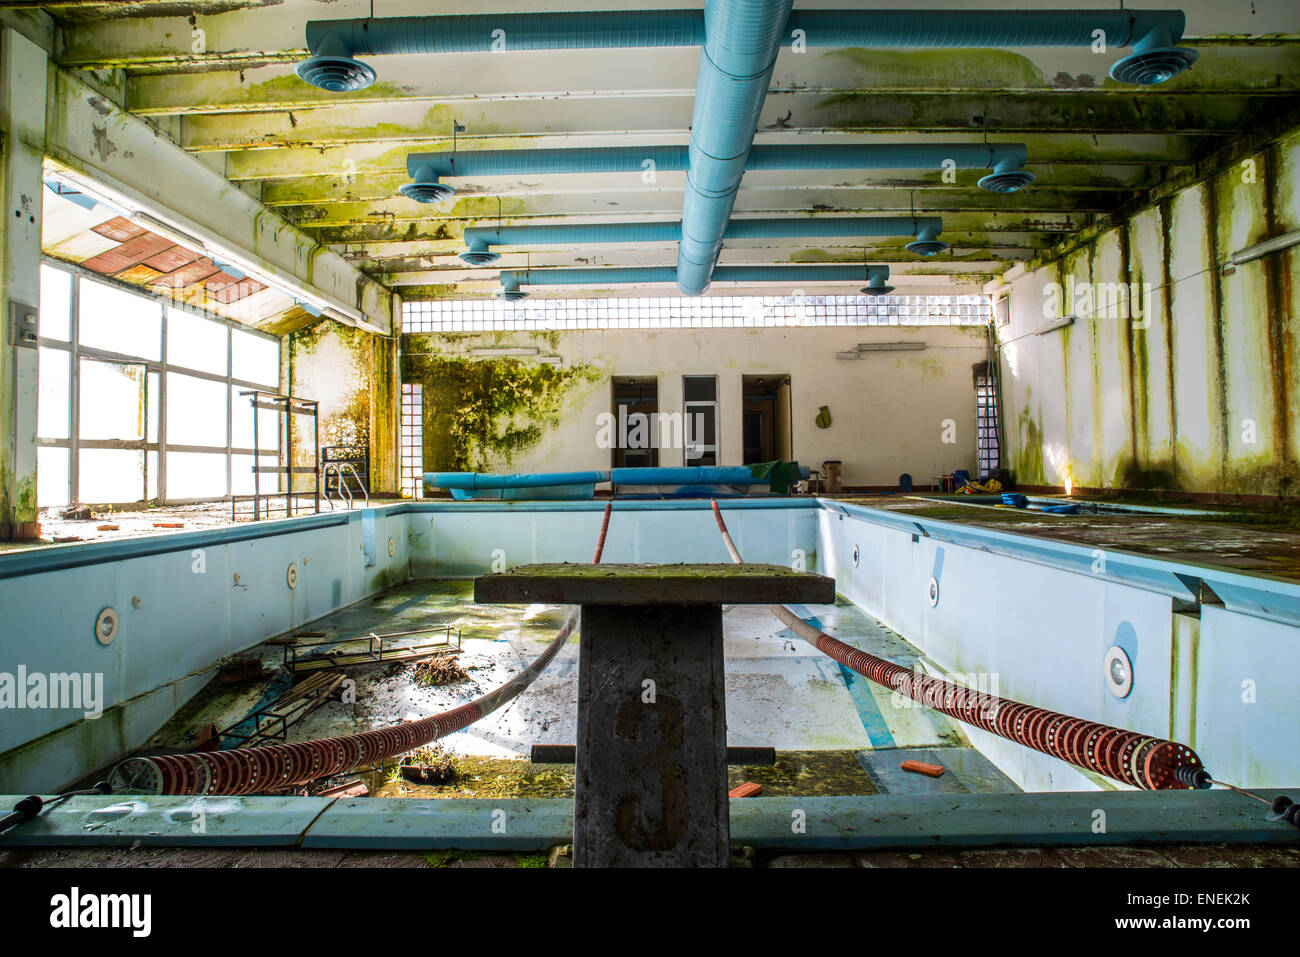 old abandoned swimming pool - Stock Image